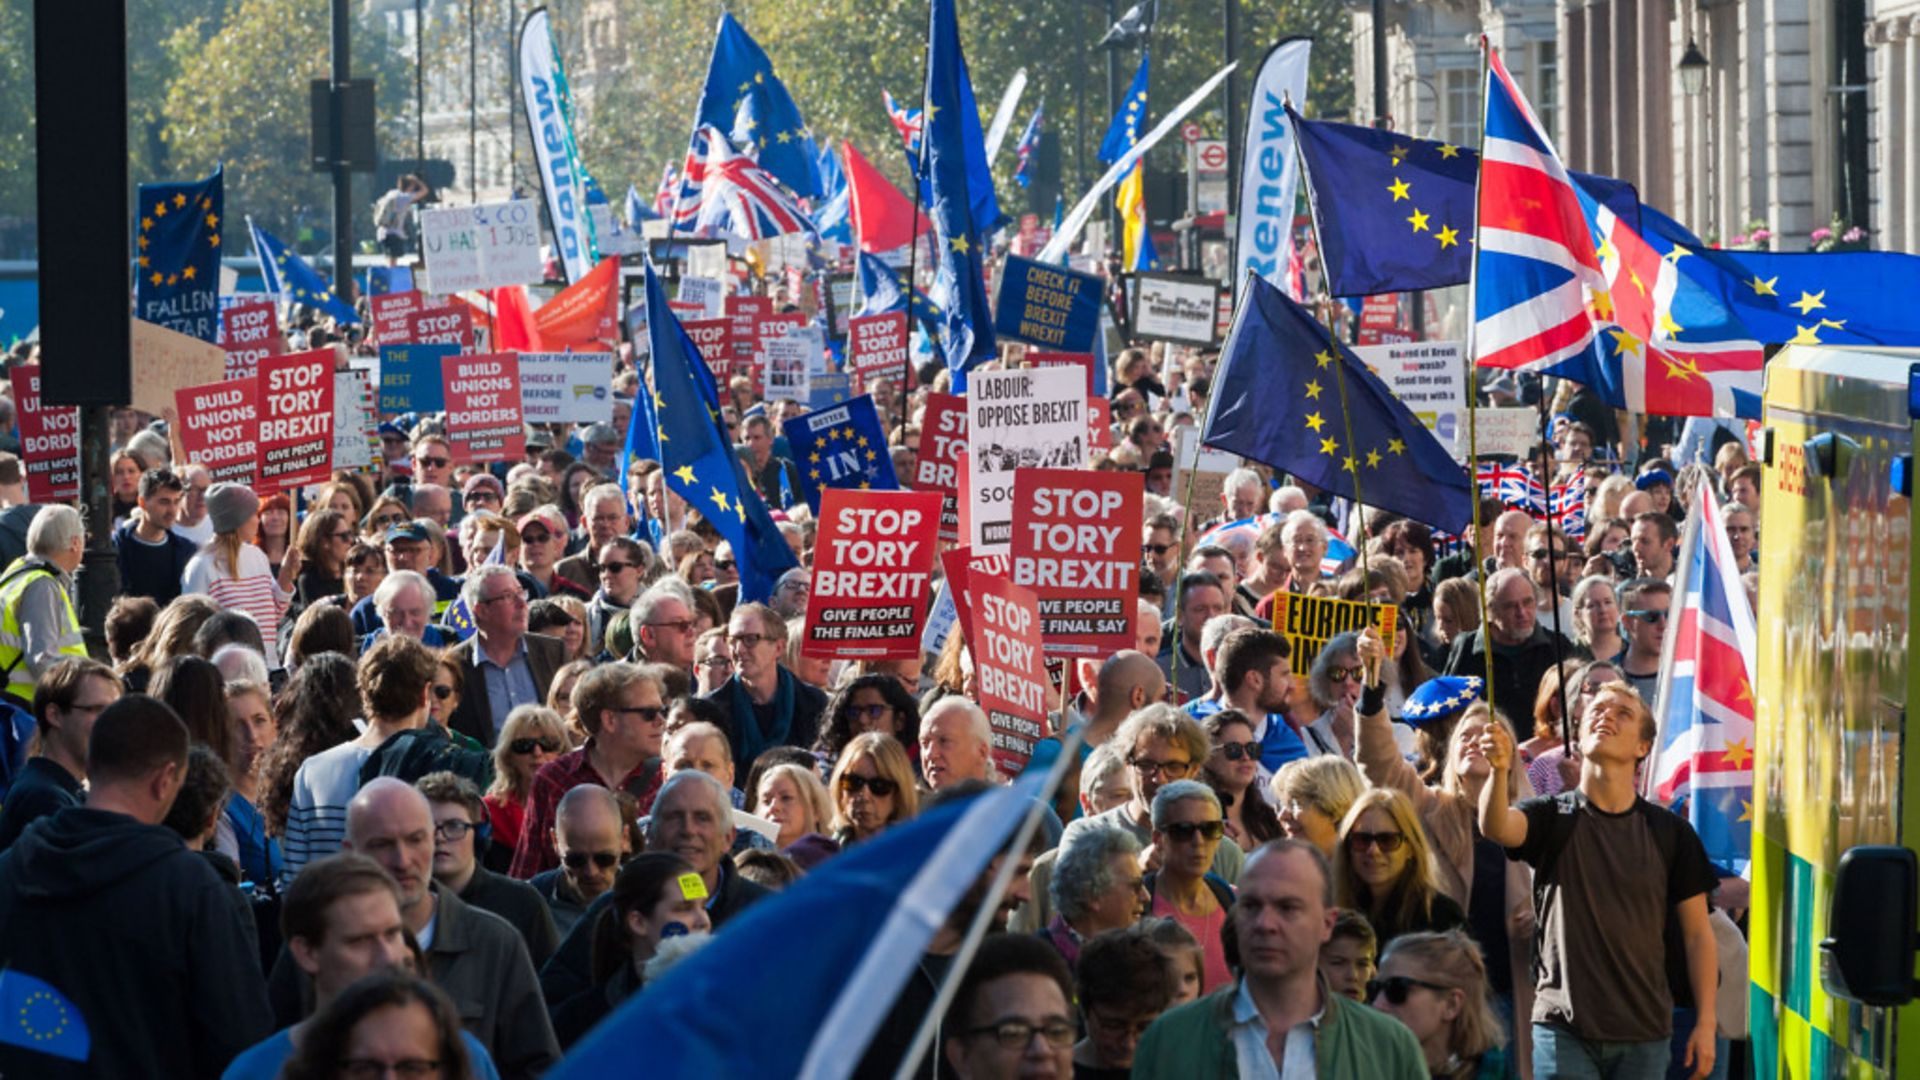 Remainers on the march after the EU referendum - Credit: Barcroft Media via Getty Images